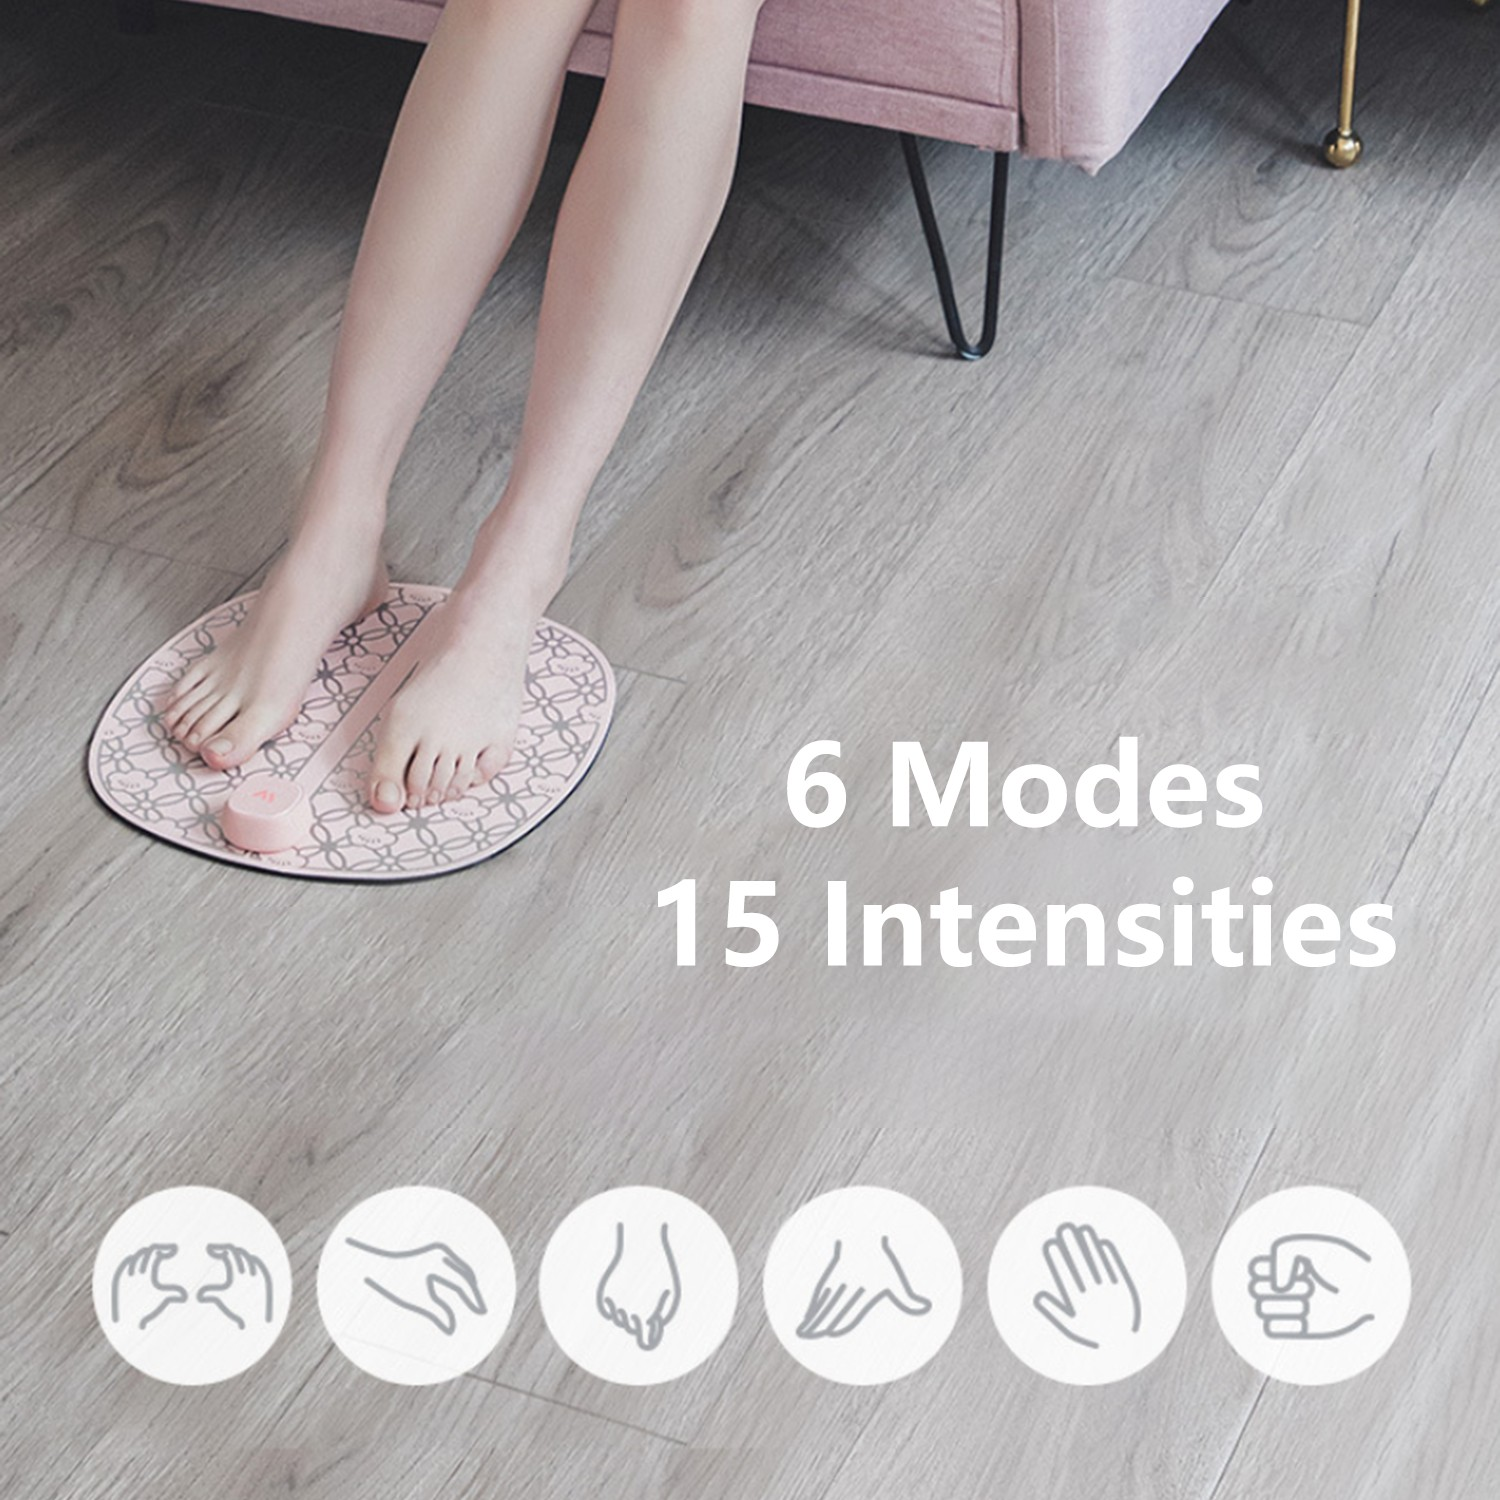 6 modes with 15 intensities